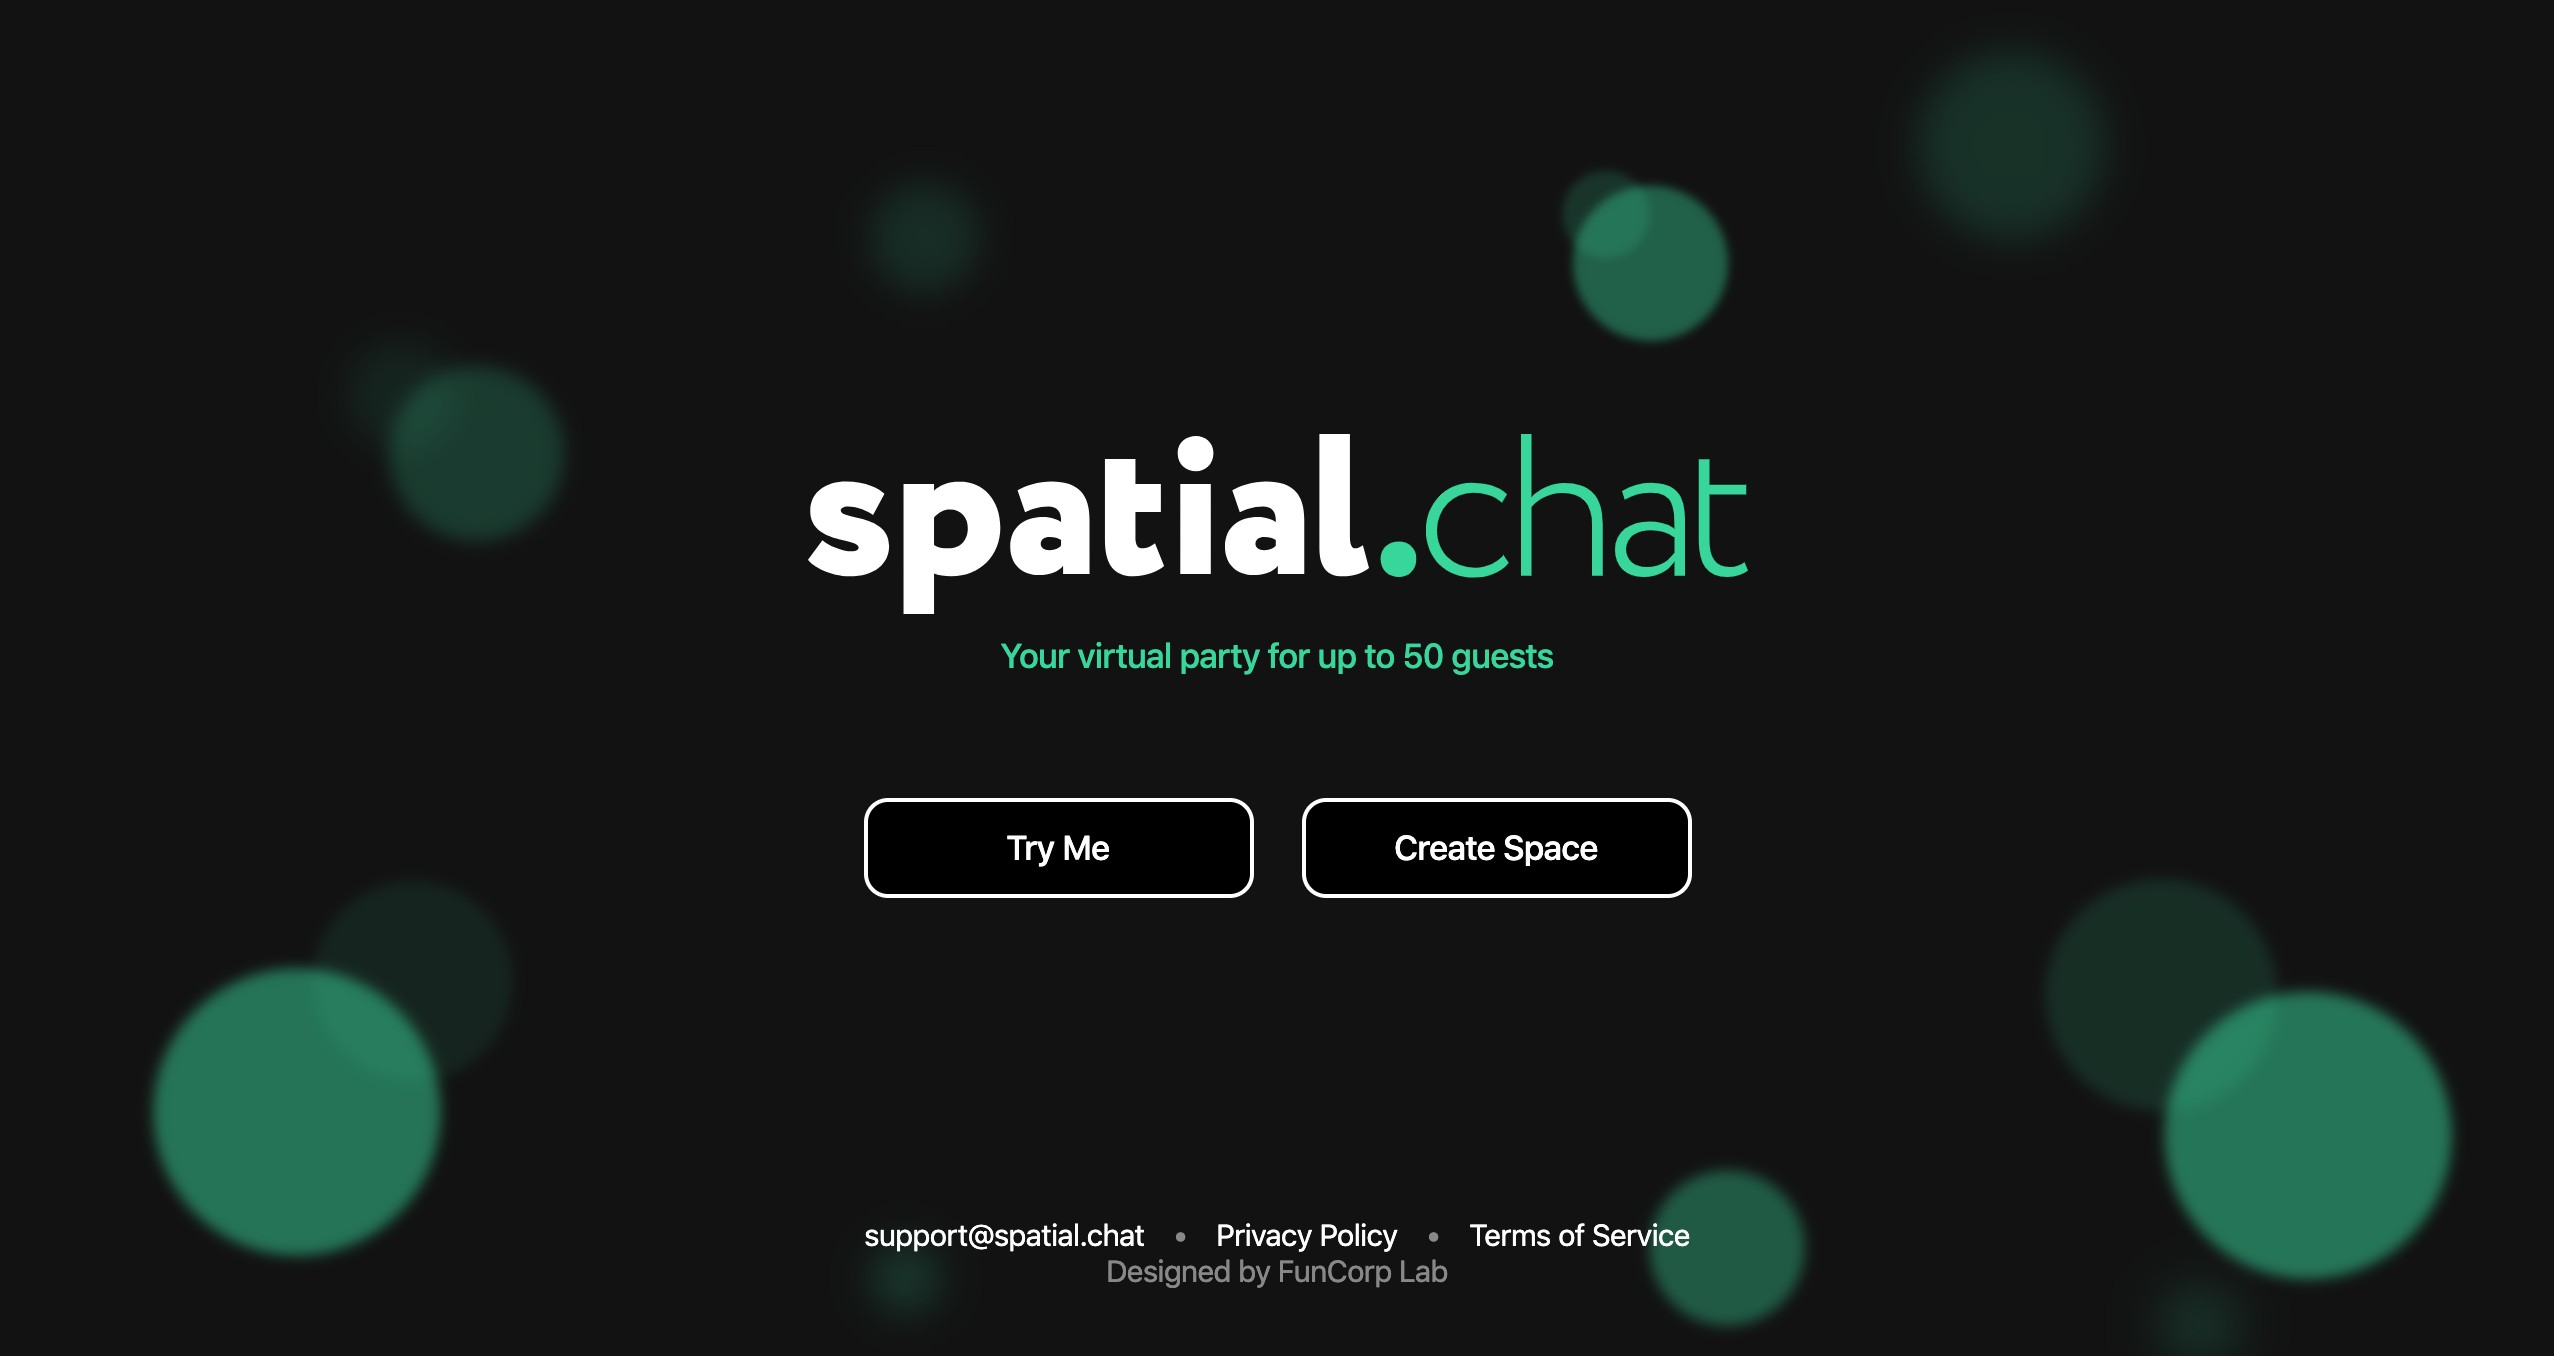 SpatialChat | Your virtual party for up to 50 guests